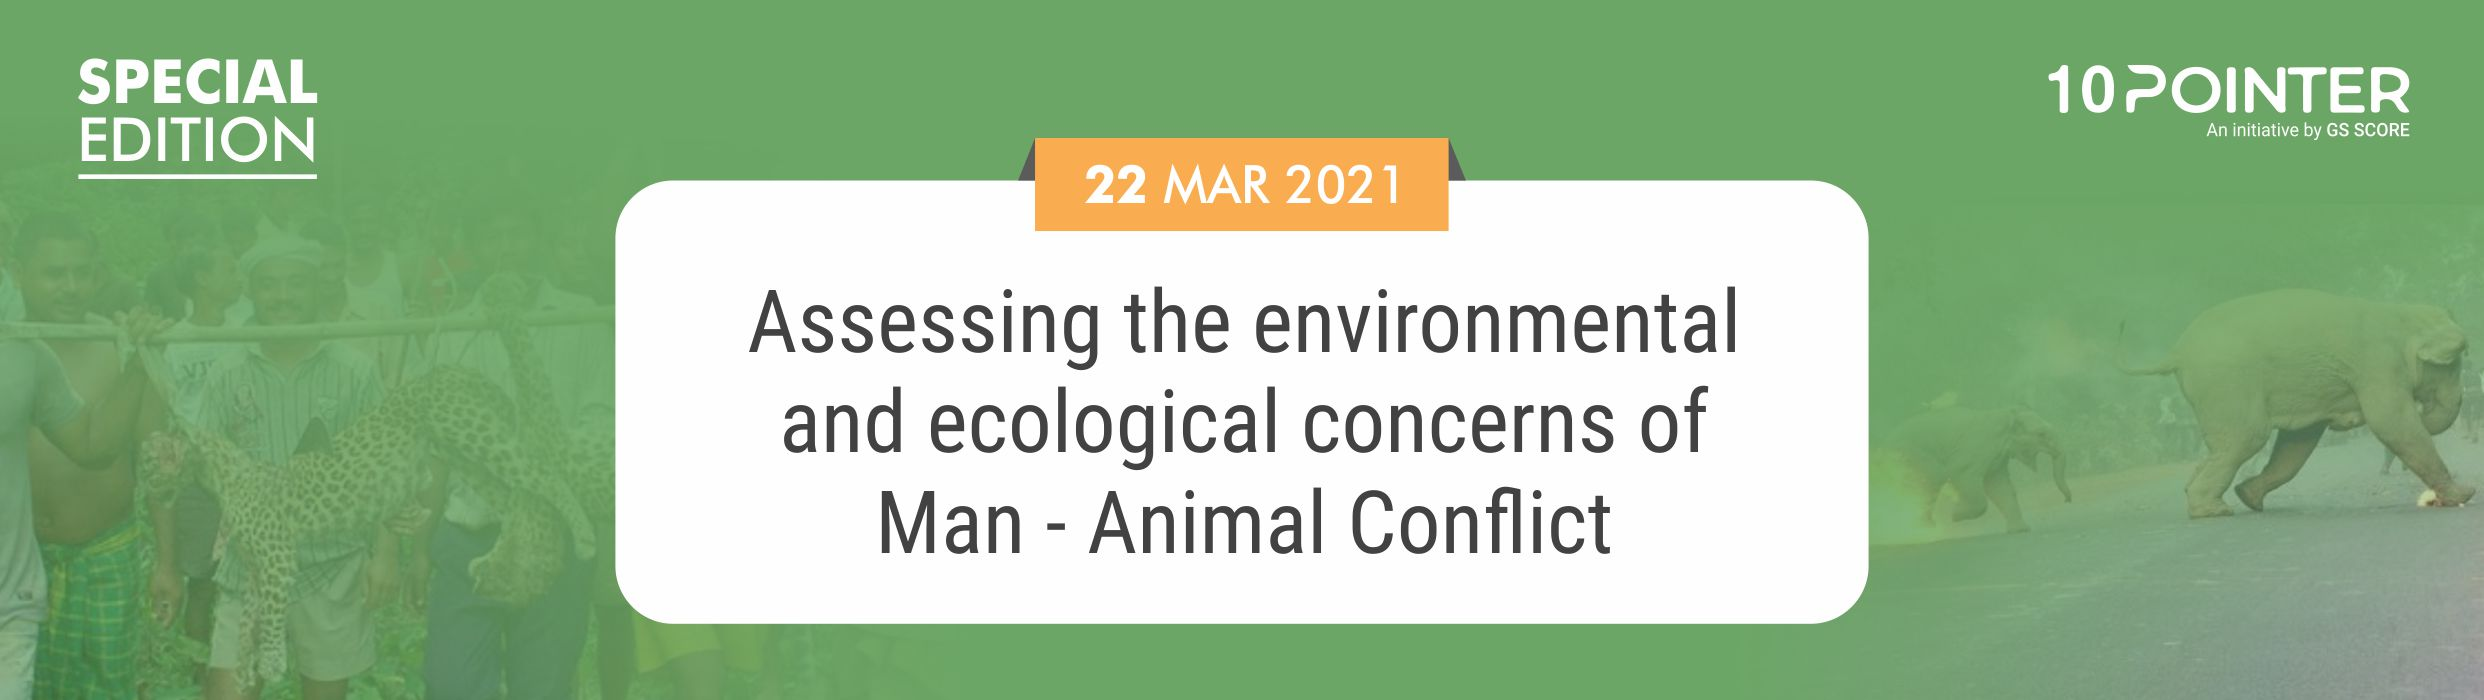 Assessing the environmental and ecological concerns of Man - Animal Conflict